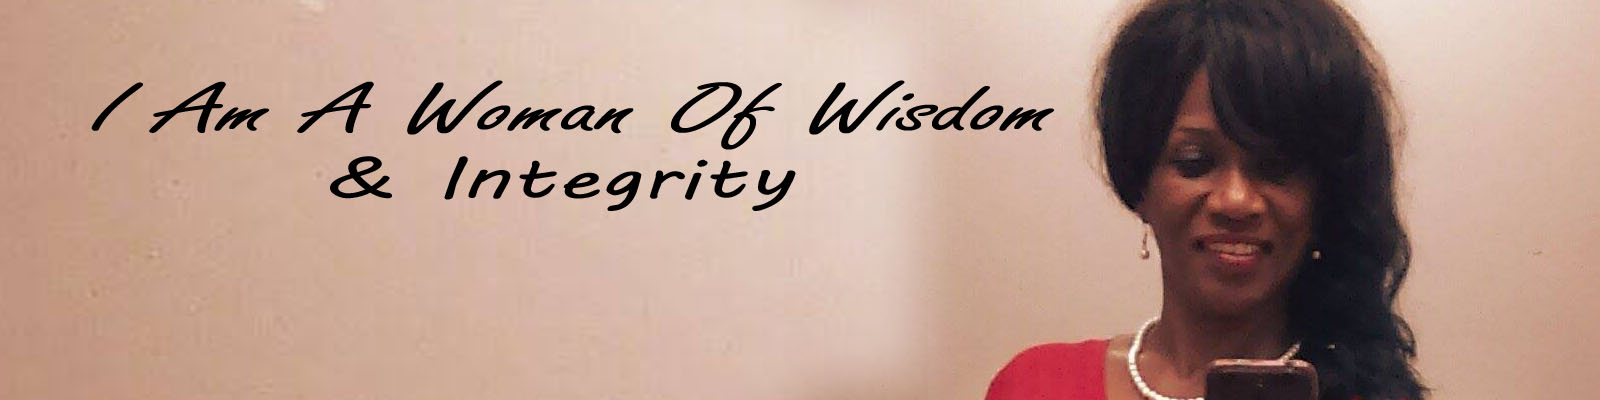 I Am A Woman Of Wisdom & Integrity